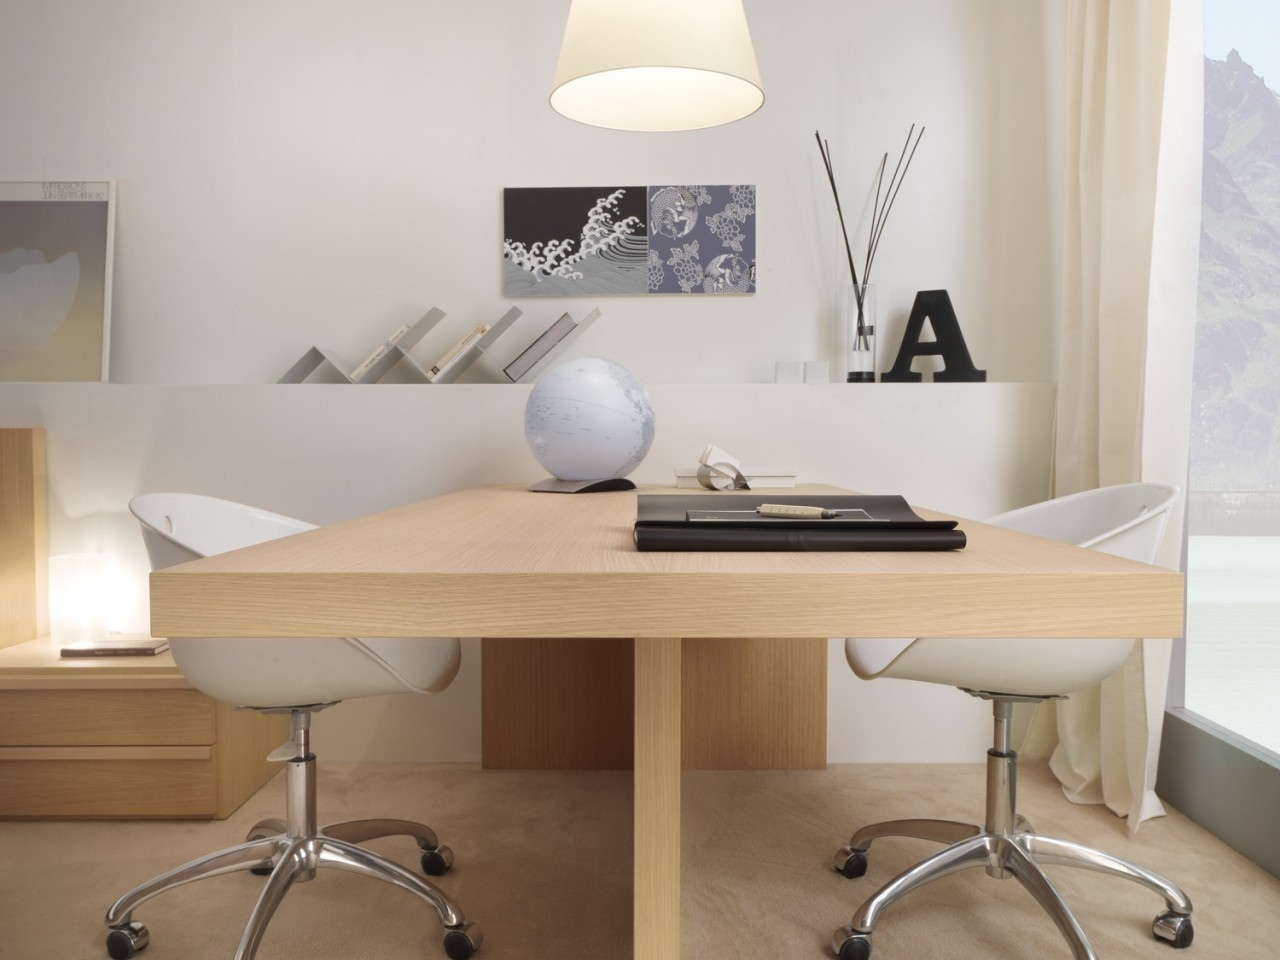 30 inspirational home office desks - Home Office Desk Design